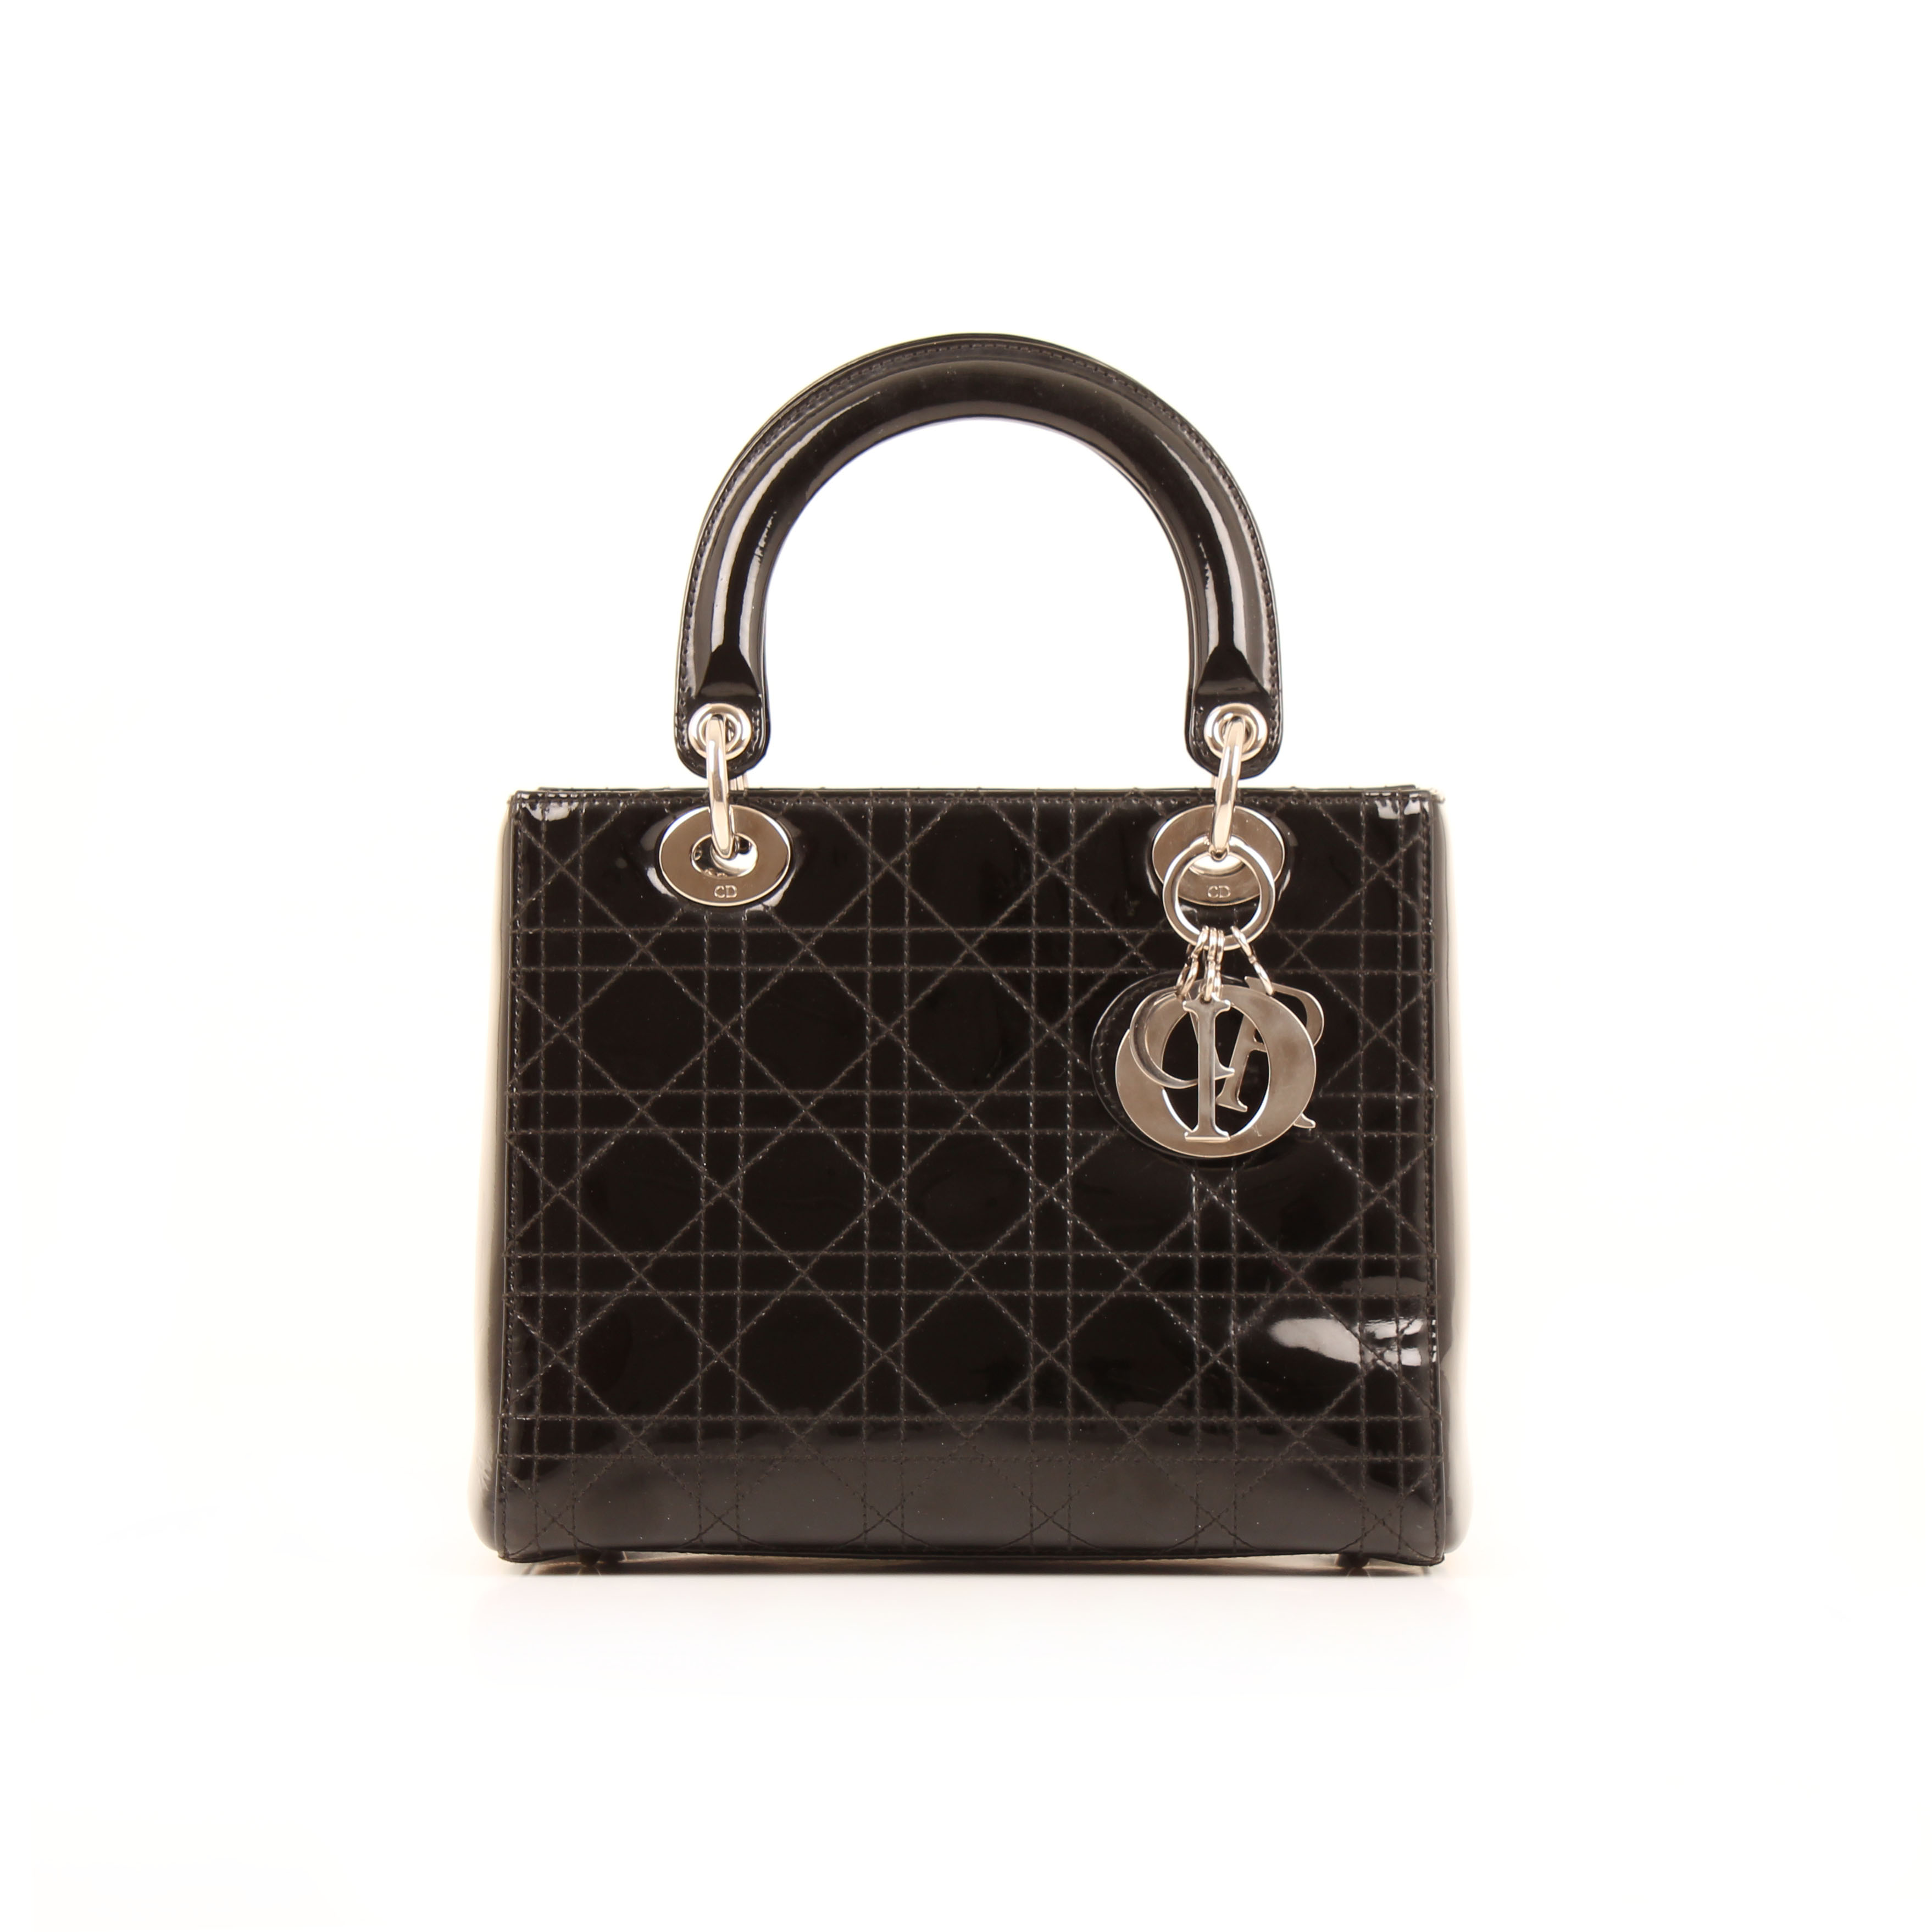 dior lady dior bag black patent leather front